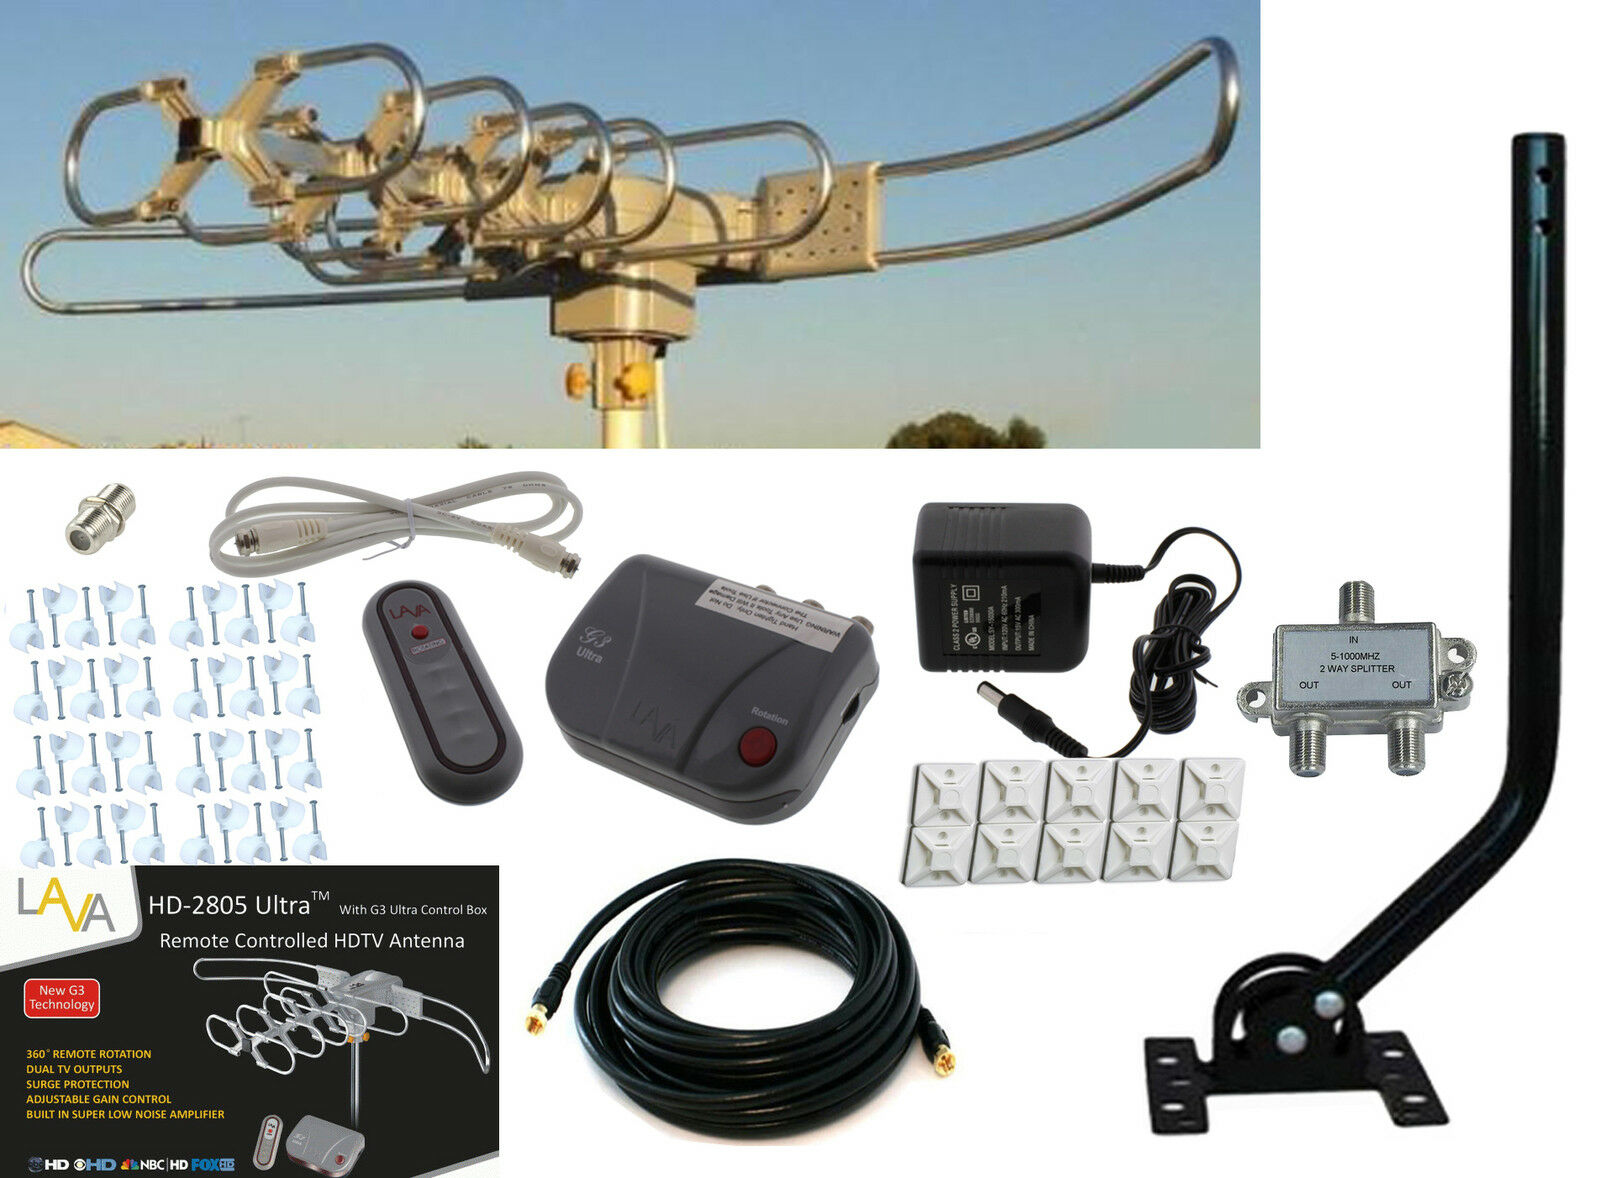 LAVA HD 2805 HDTV DIGITAL ROTOR OUTDOOR TV ANTENNA CABLE Install Kit w/ J-Pole. Available Now for 99.90